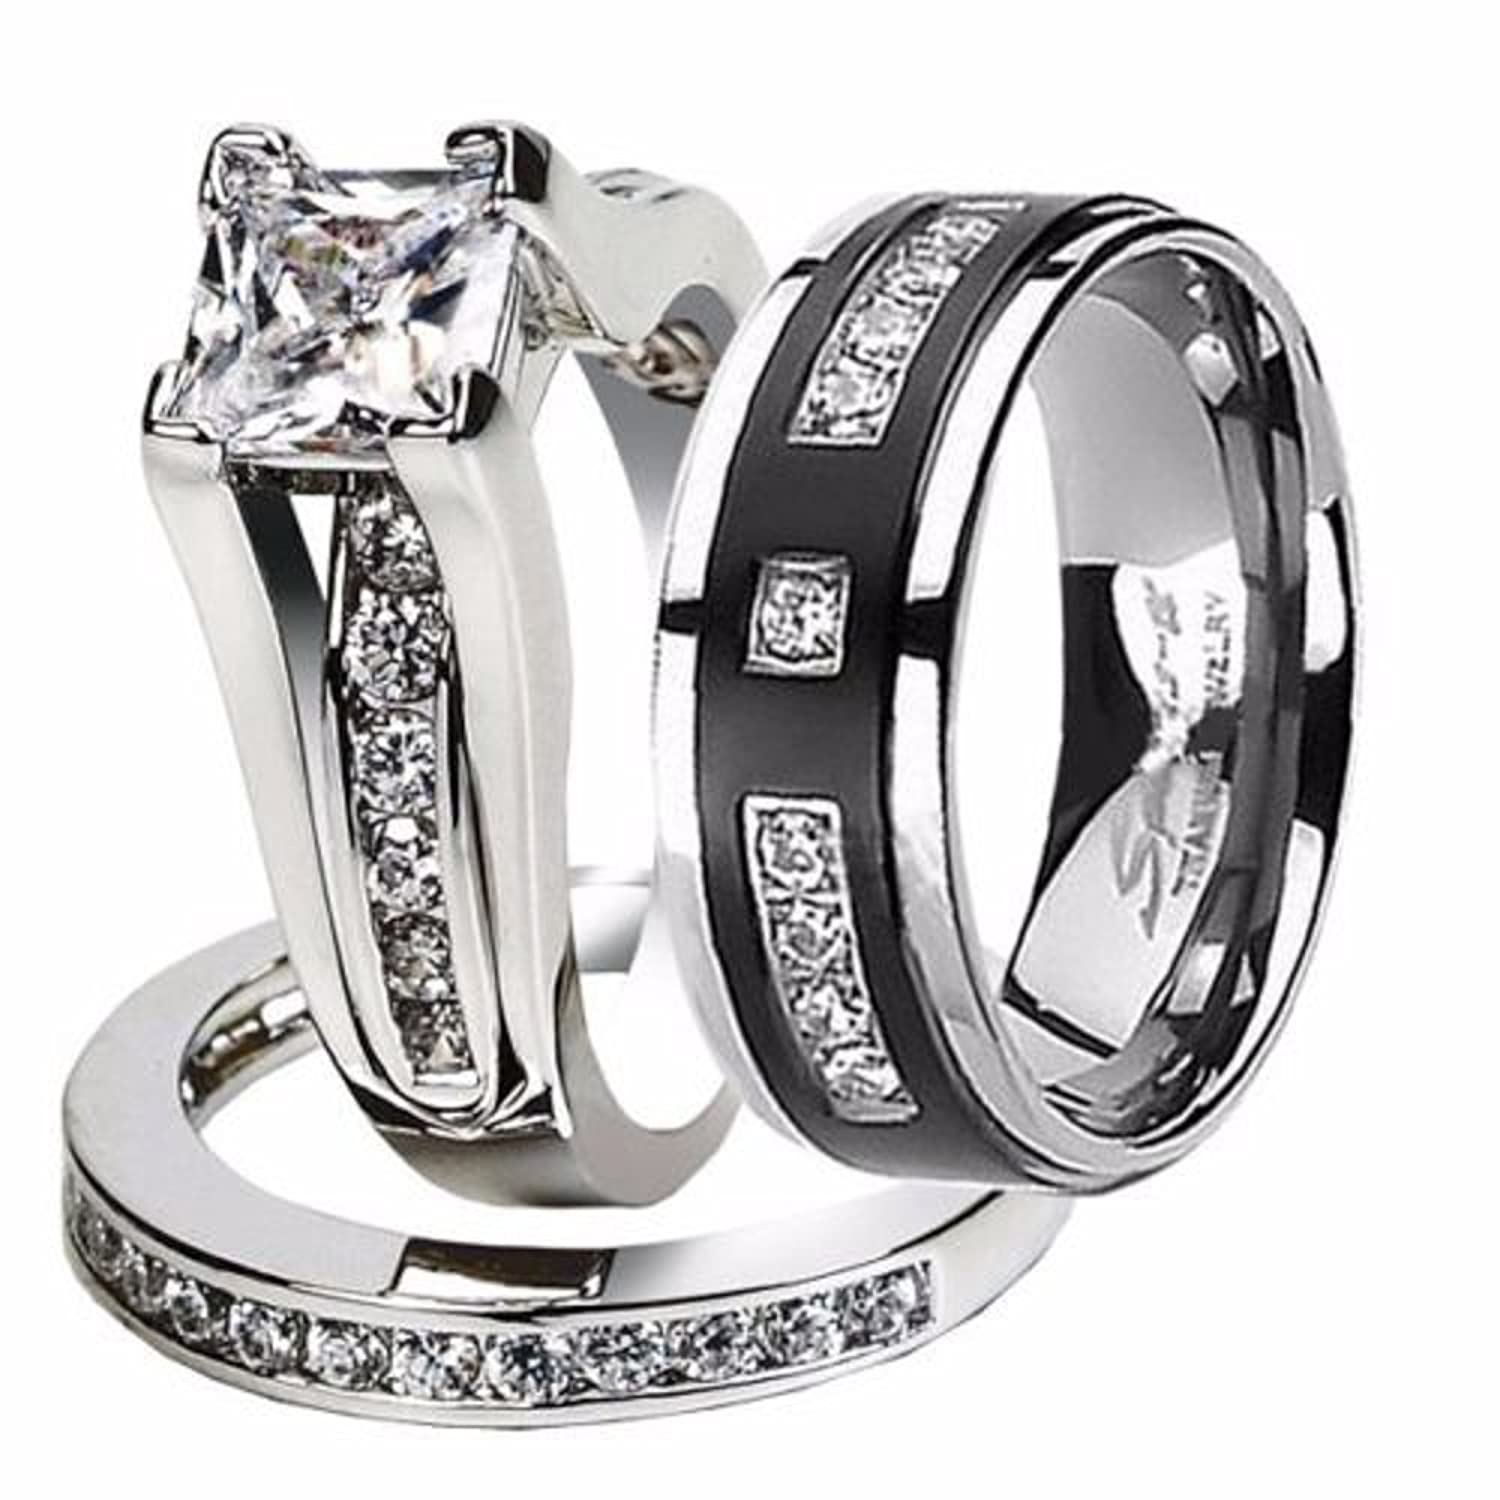 com ring cushion solitaire sets gold halo white band ip bands diamond engagement set platinum wedding walmart